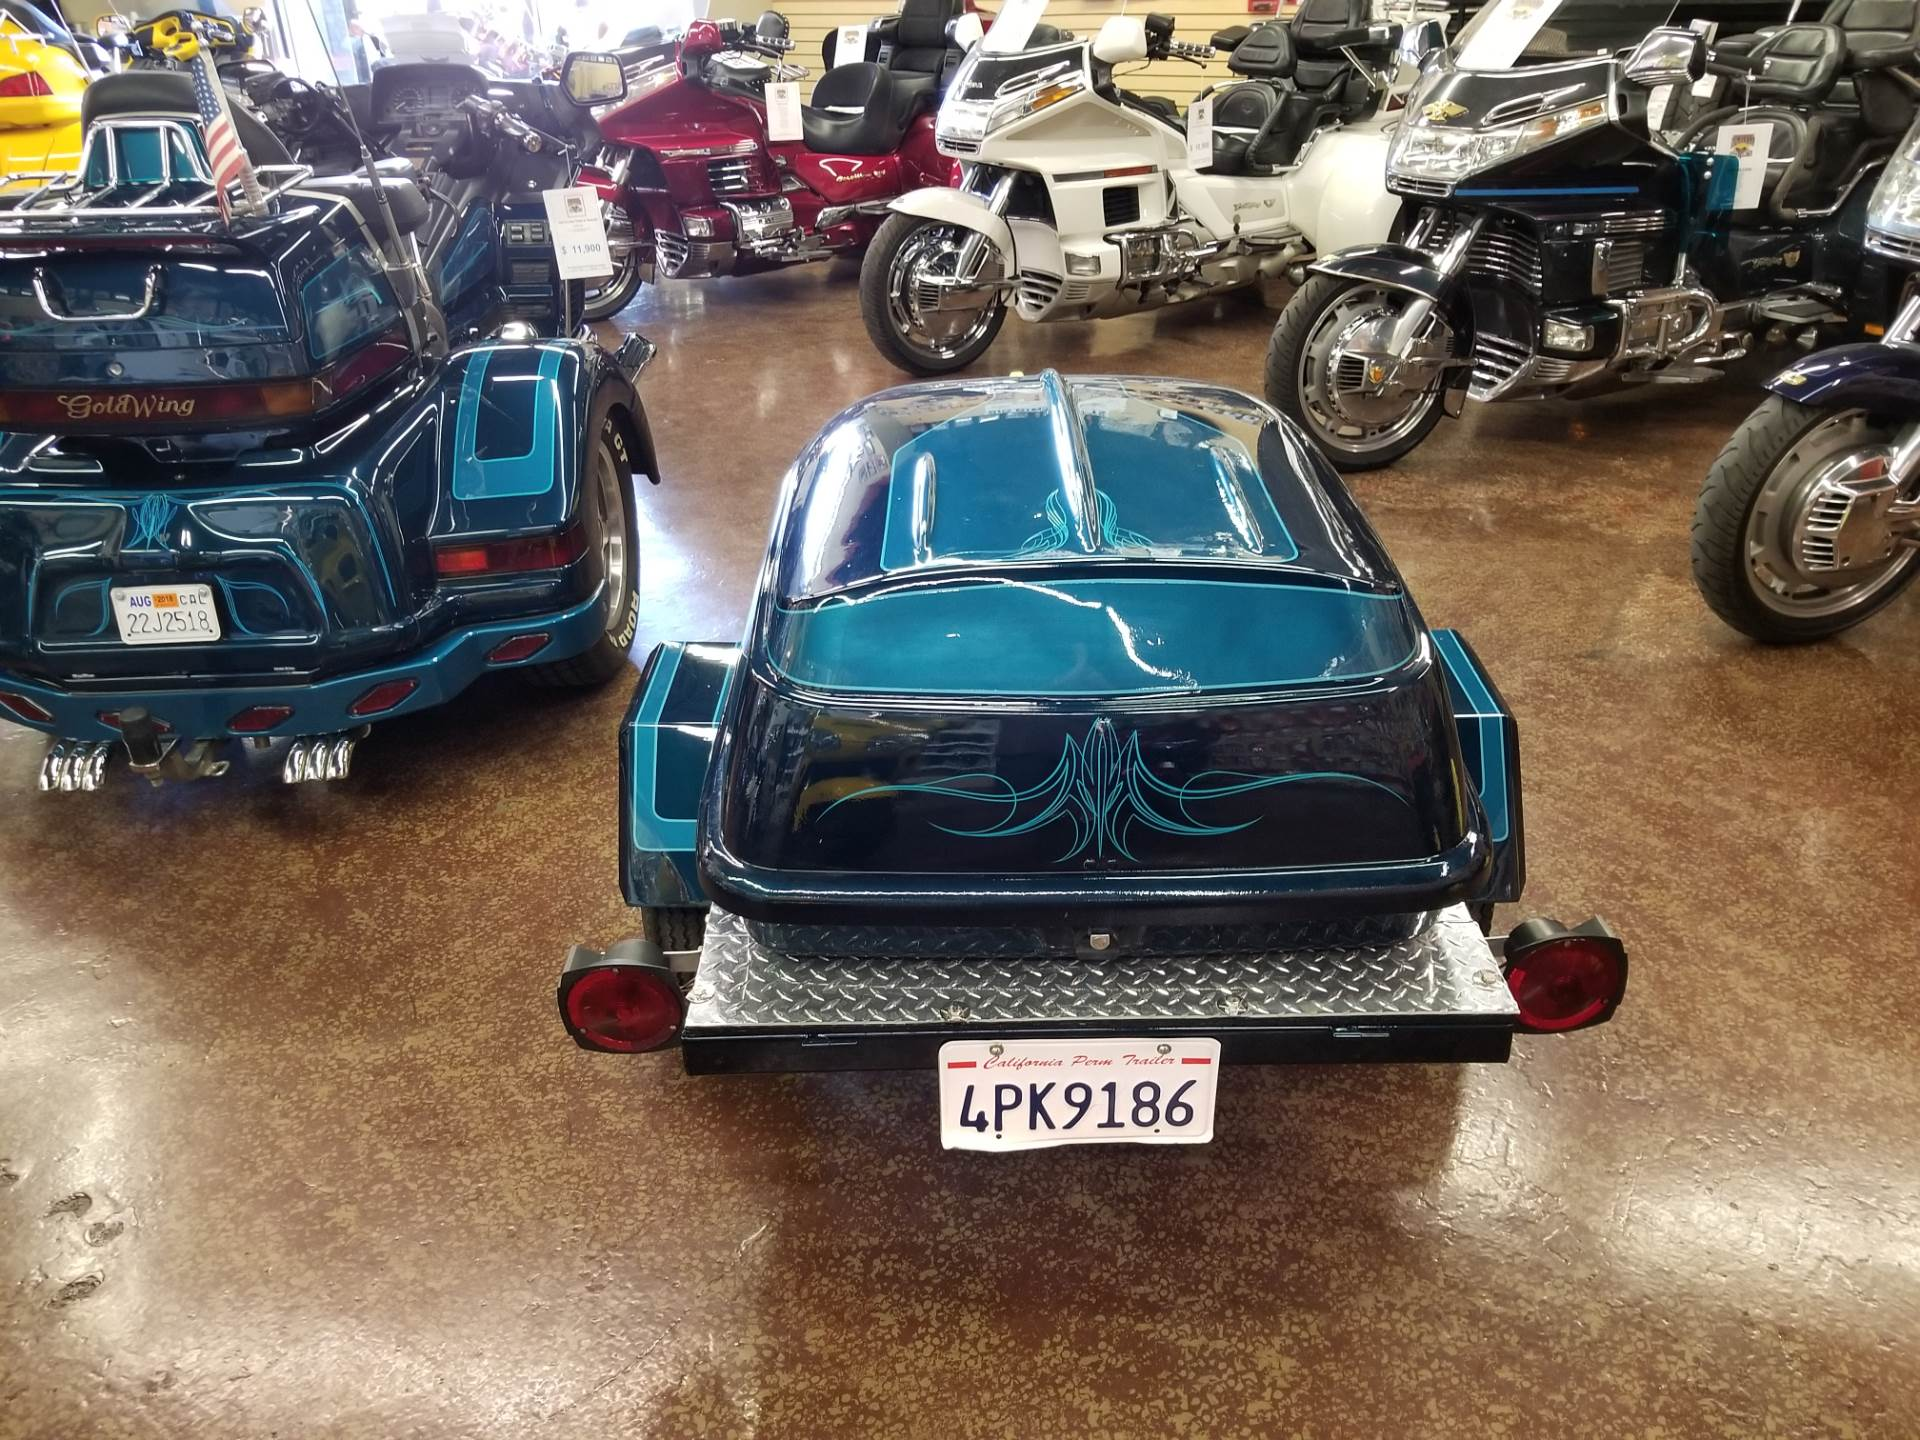 1994 Lehman Trikes/Honda GL1500 Trike & Trailer Pkg. in Highland, California